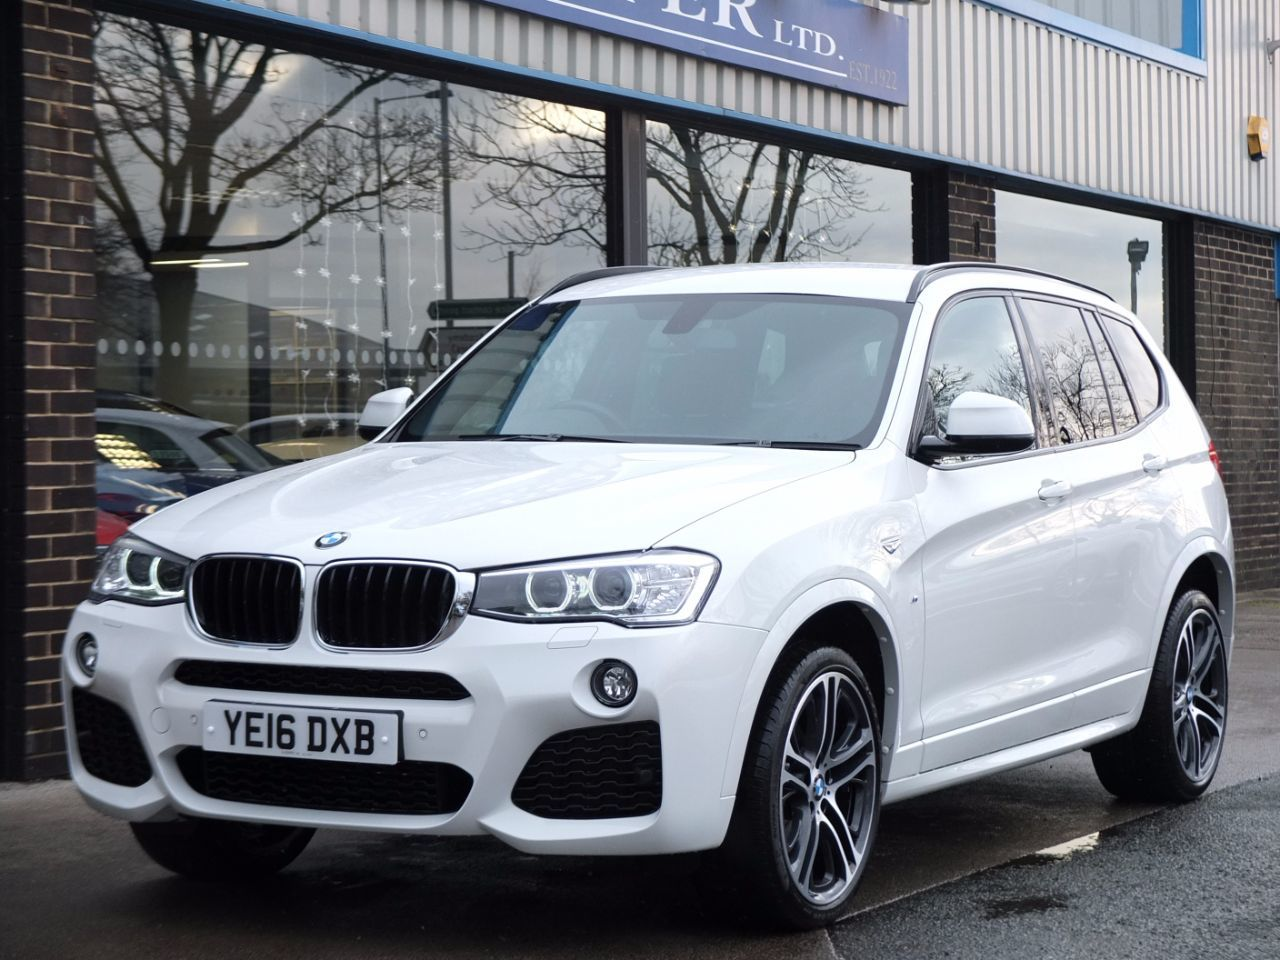 BMW X3 2.0 xDrive20d M Sport Plus Auto Estate Diesel Alpine WhiteBMW X3 2.0 xDrive20d M Sport Plus Auto Estate Diesel Alpine White at fa Roper Ltd Bradford